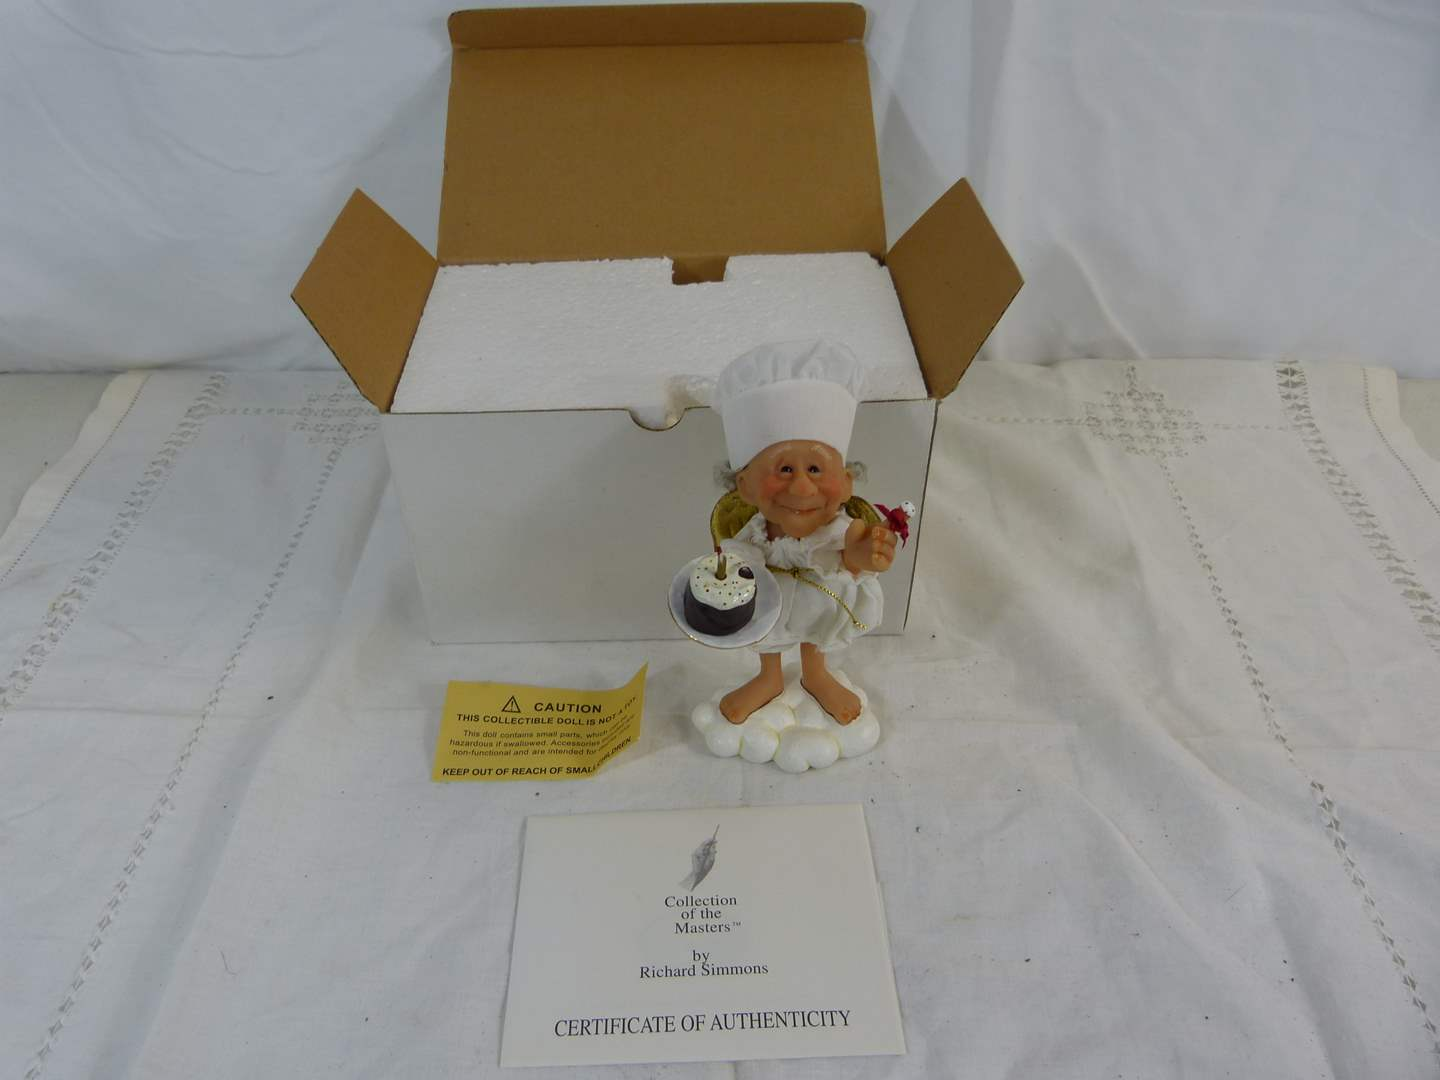 Lot # 89 Collection of the Masters by Richard Simmons Figurine (main image)